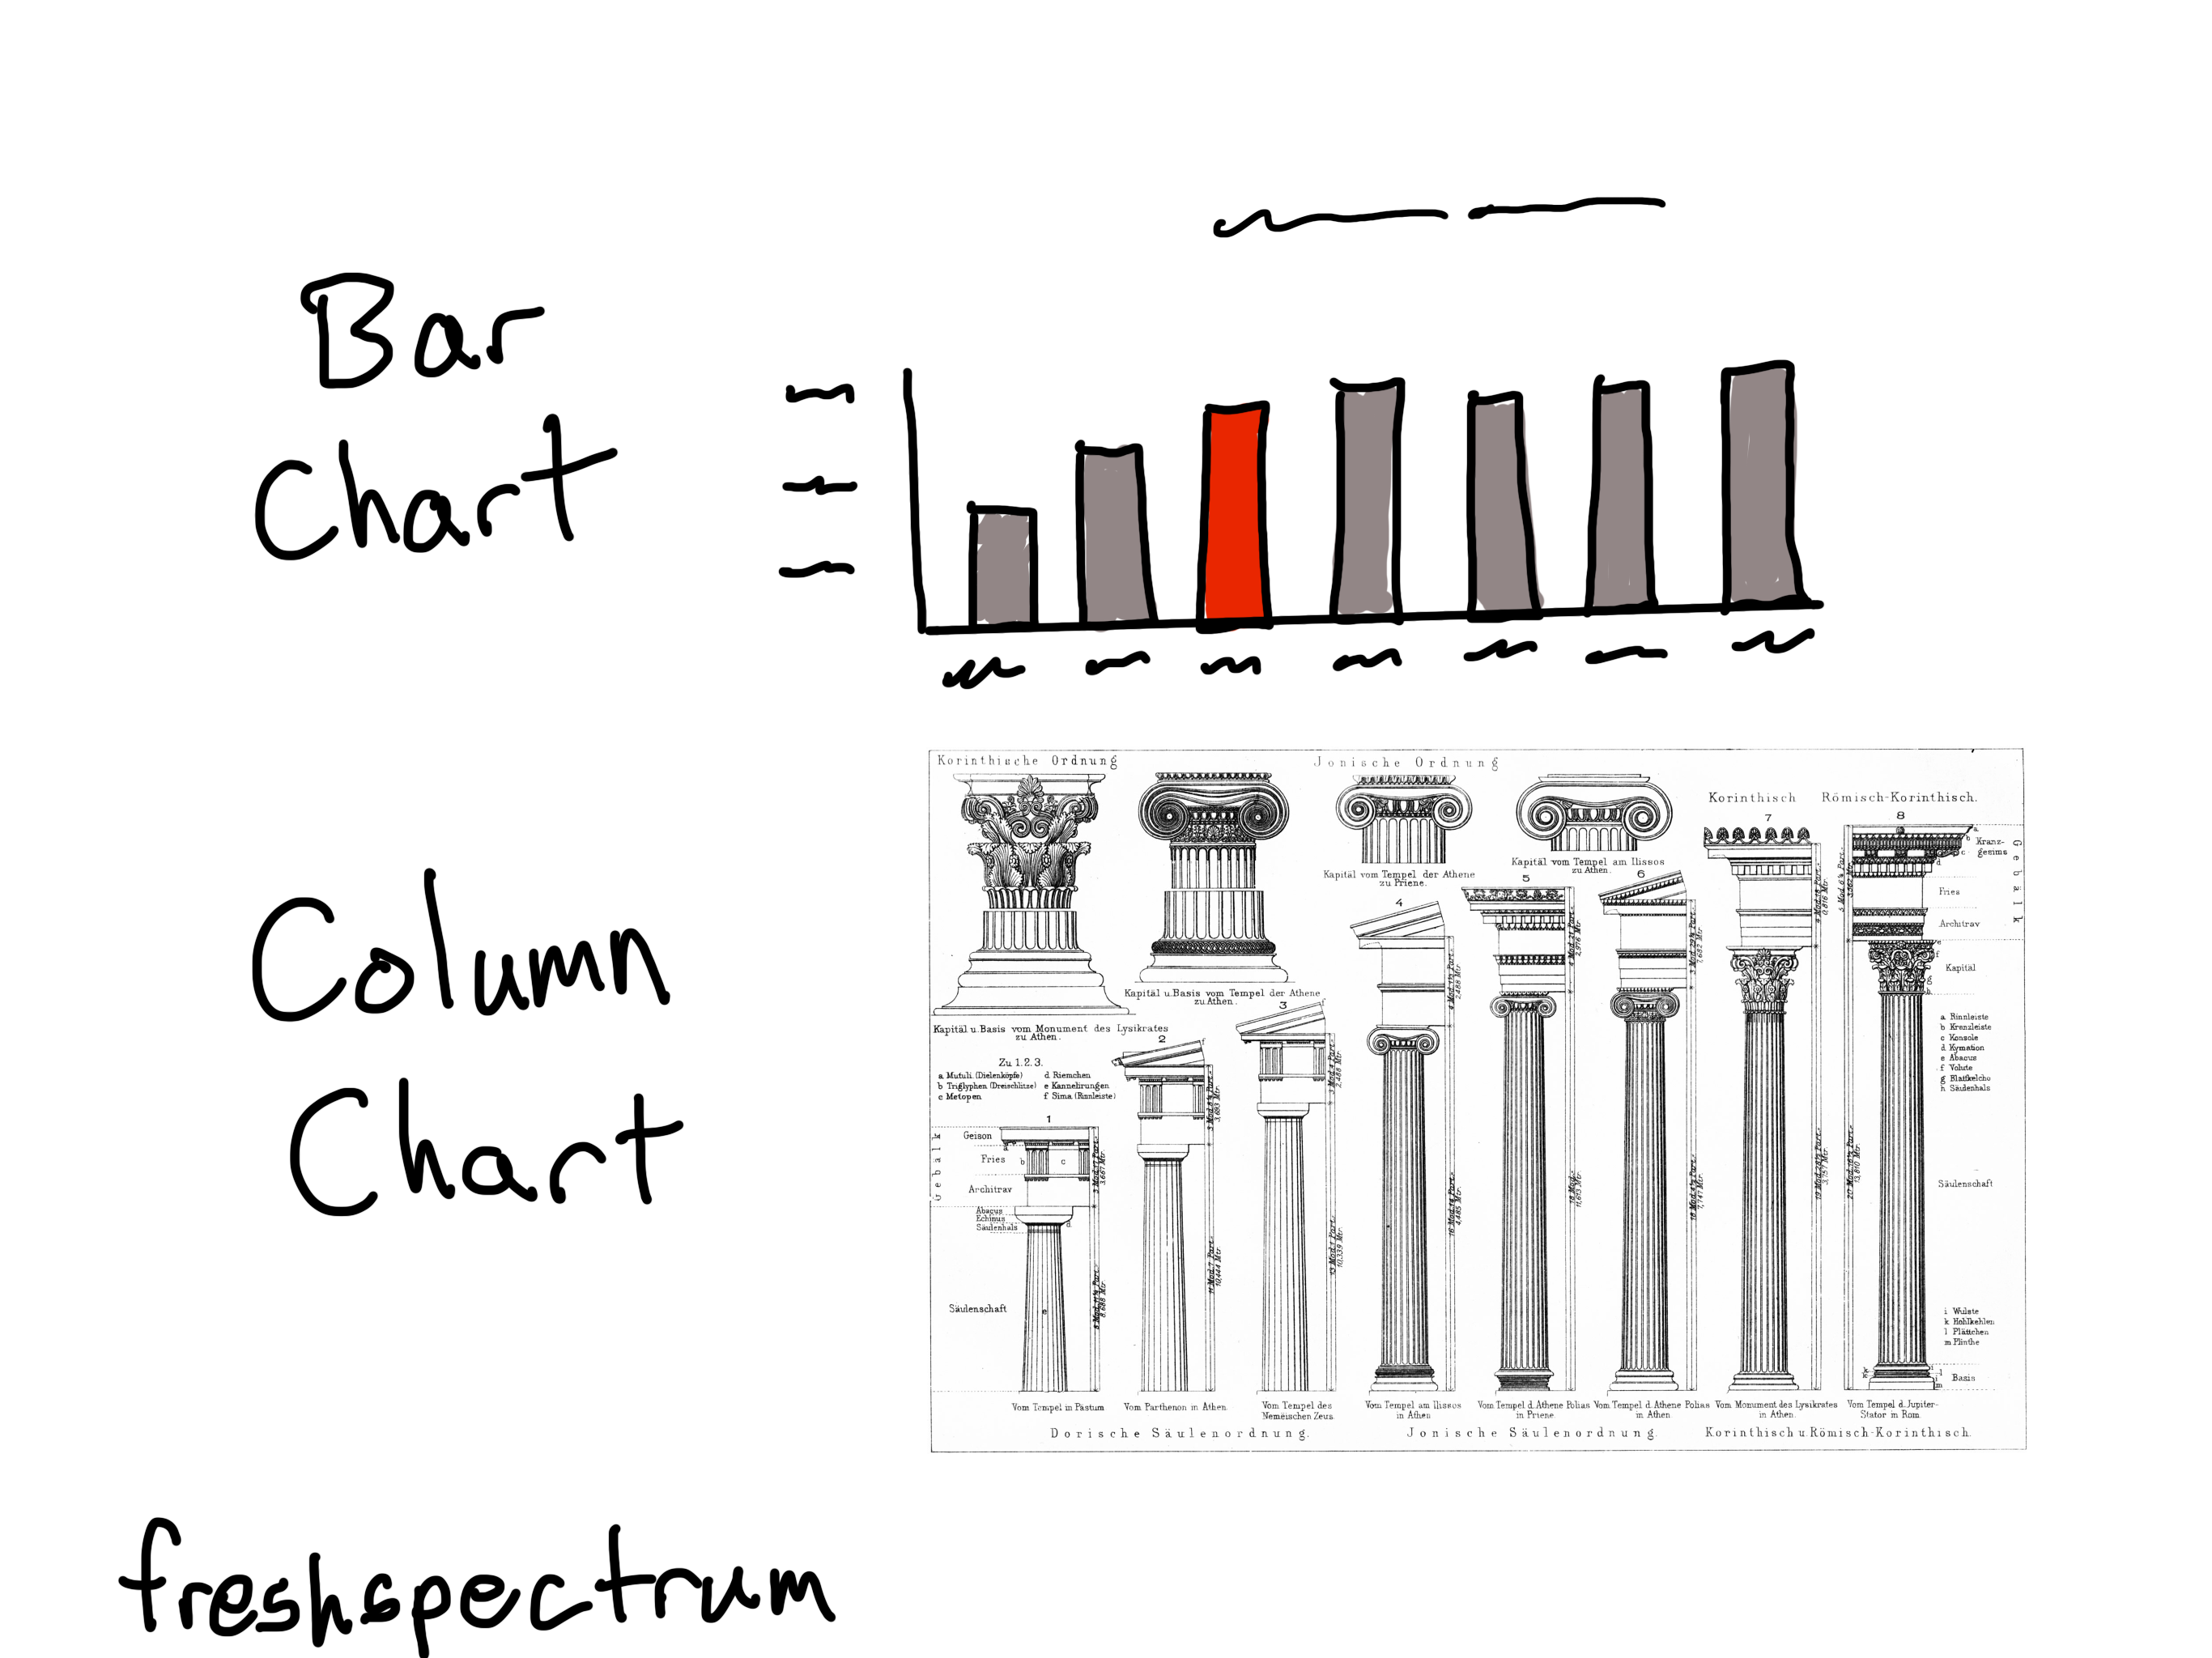 Cartoon showing a bar chart and a chart with columns.